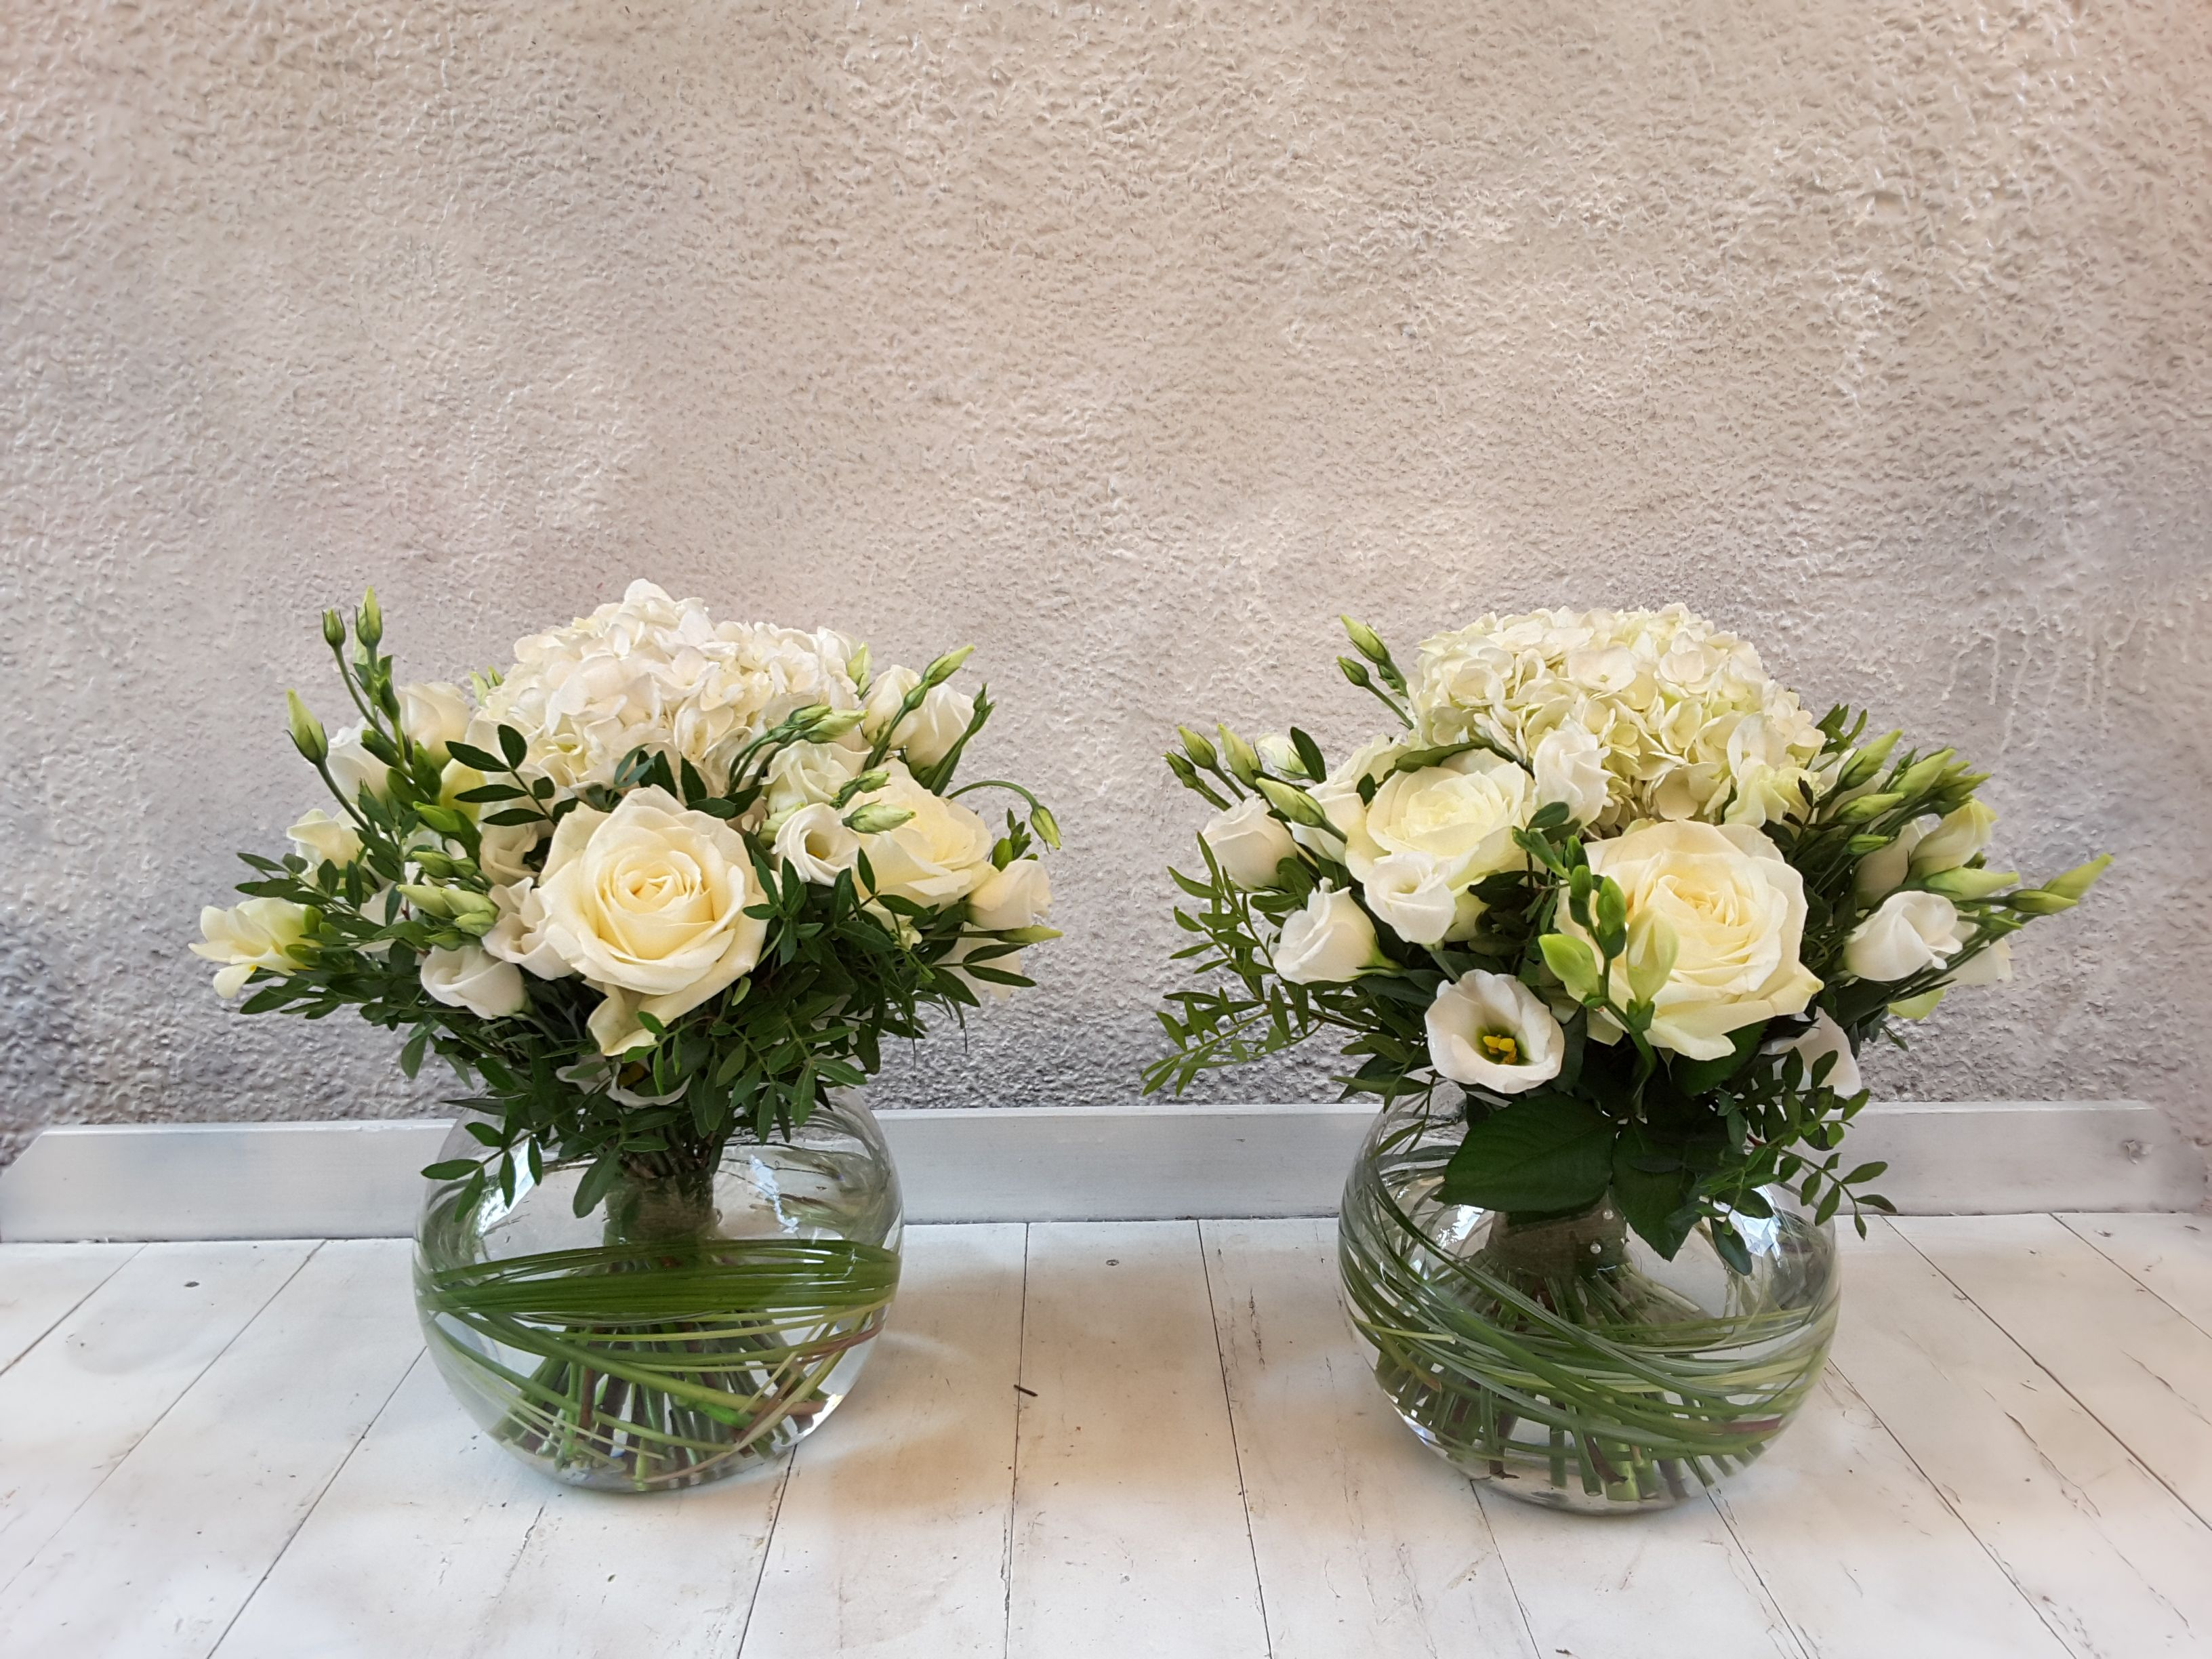 White Hydrangea, Rose, Freesia and Lisianthus in a clear